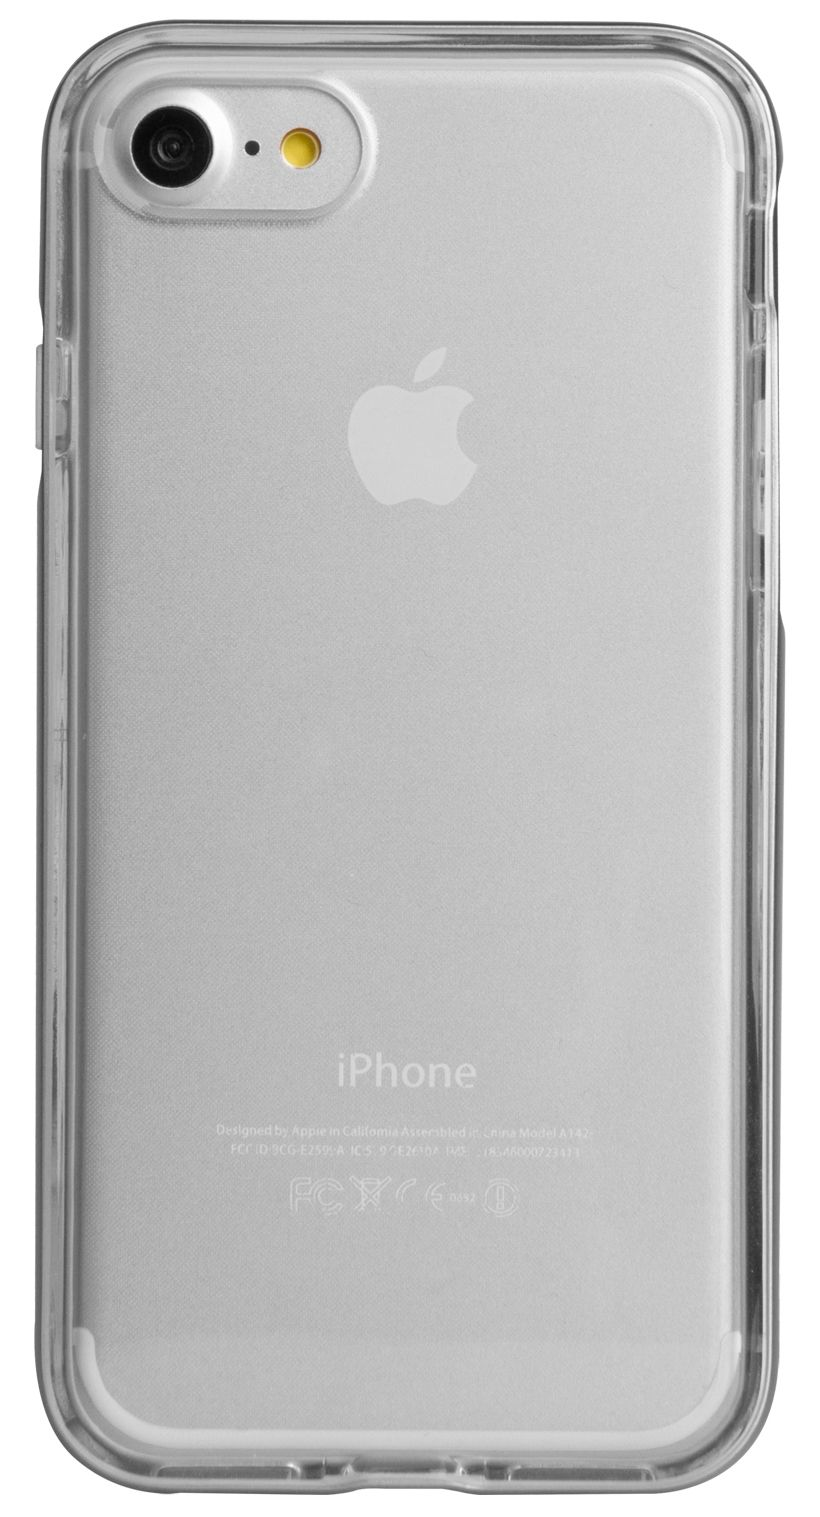 VIVA iPhone 7 Airefit Borde Case TPU Silver, картинка 1